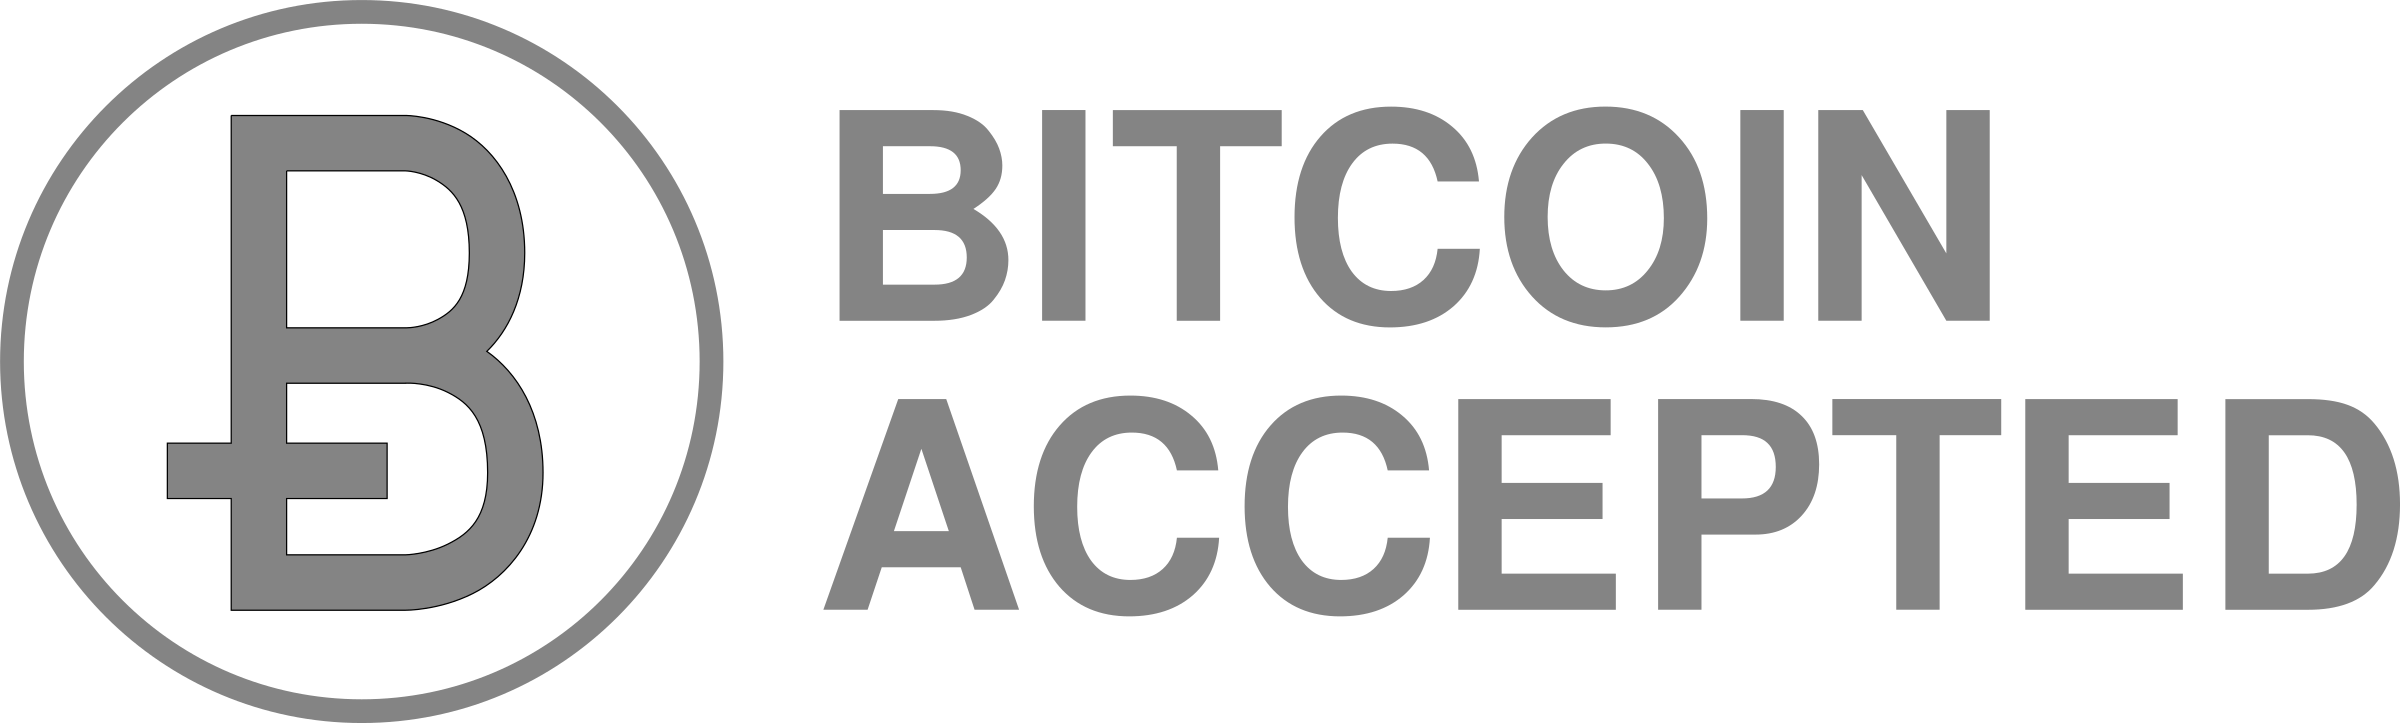 circleBitcoinAcceptedGray by ecogex